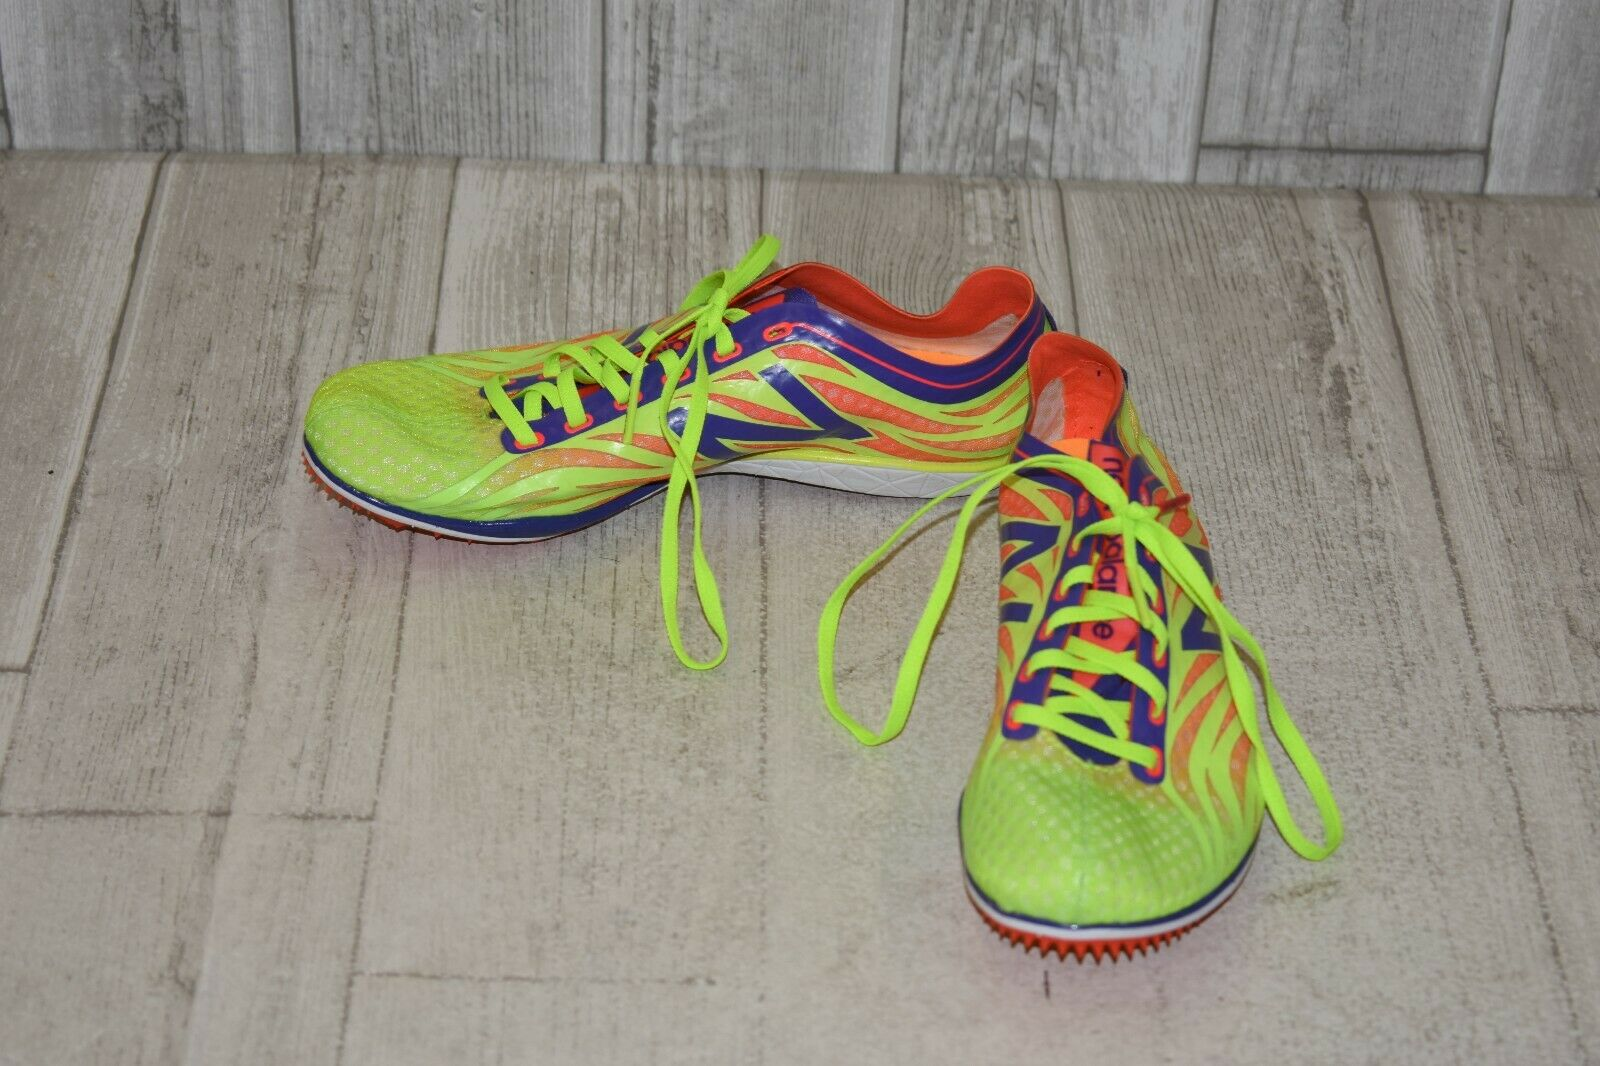 New Balance WLD5000H Track shoes - Women's Size 5.5B - Multi-color